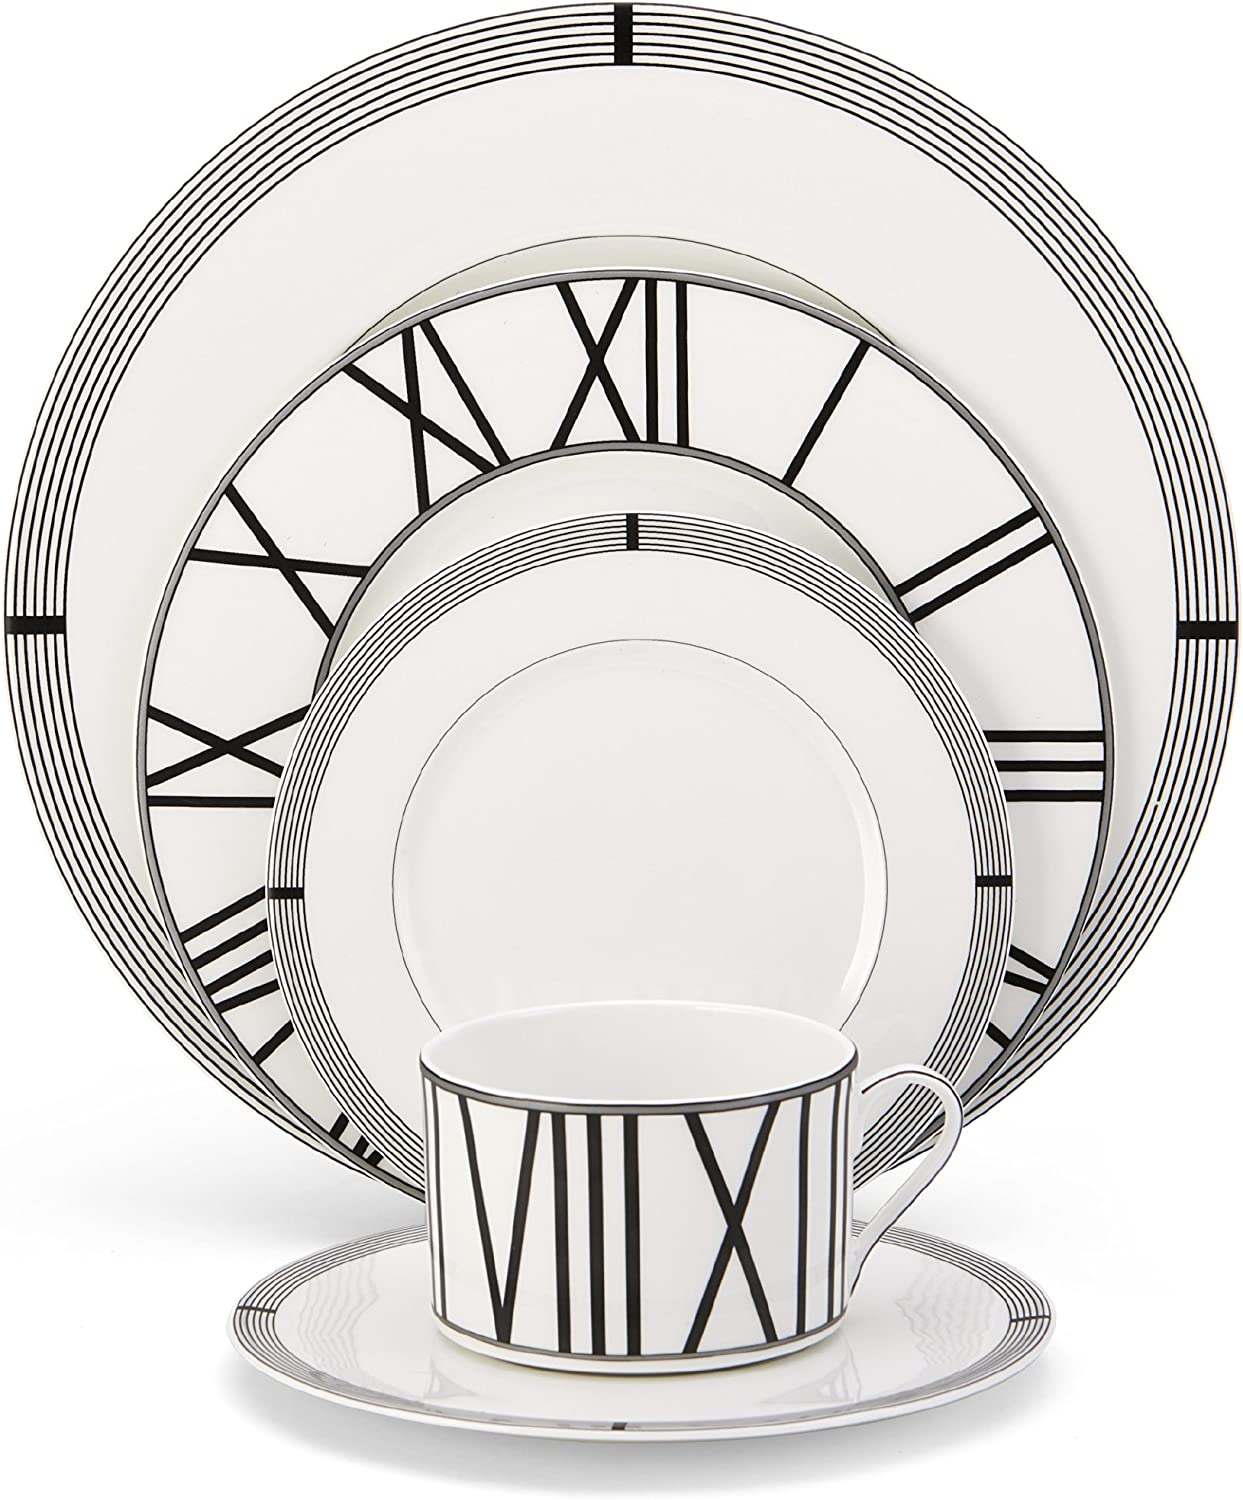 Mikasa Winslet 5-Piece Place Setting, Service for 1